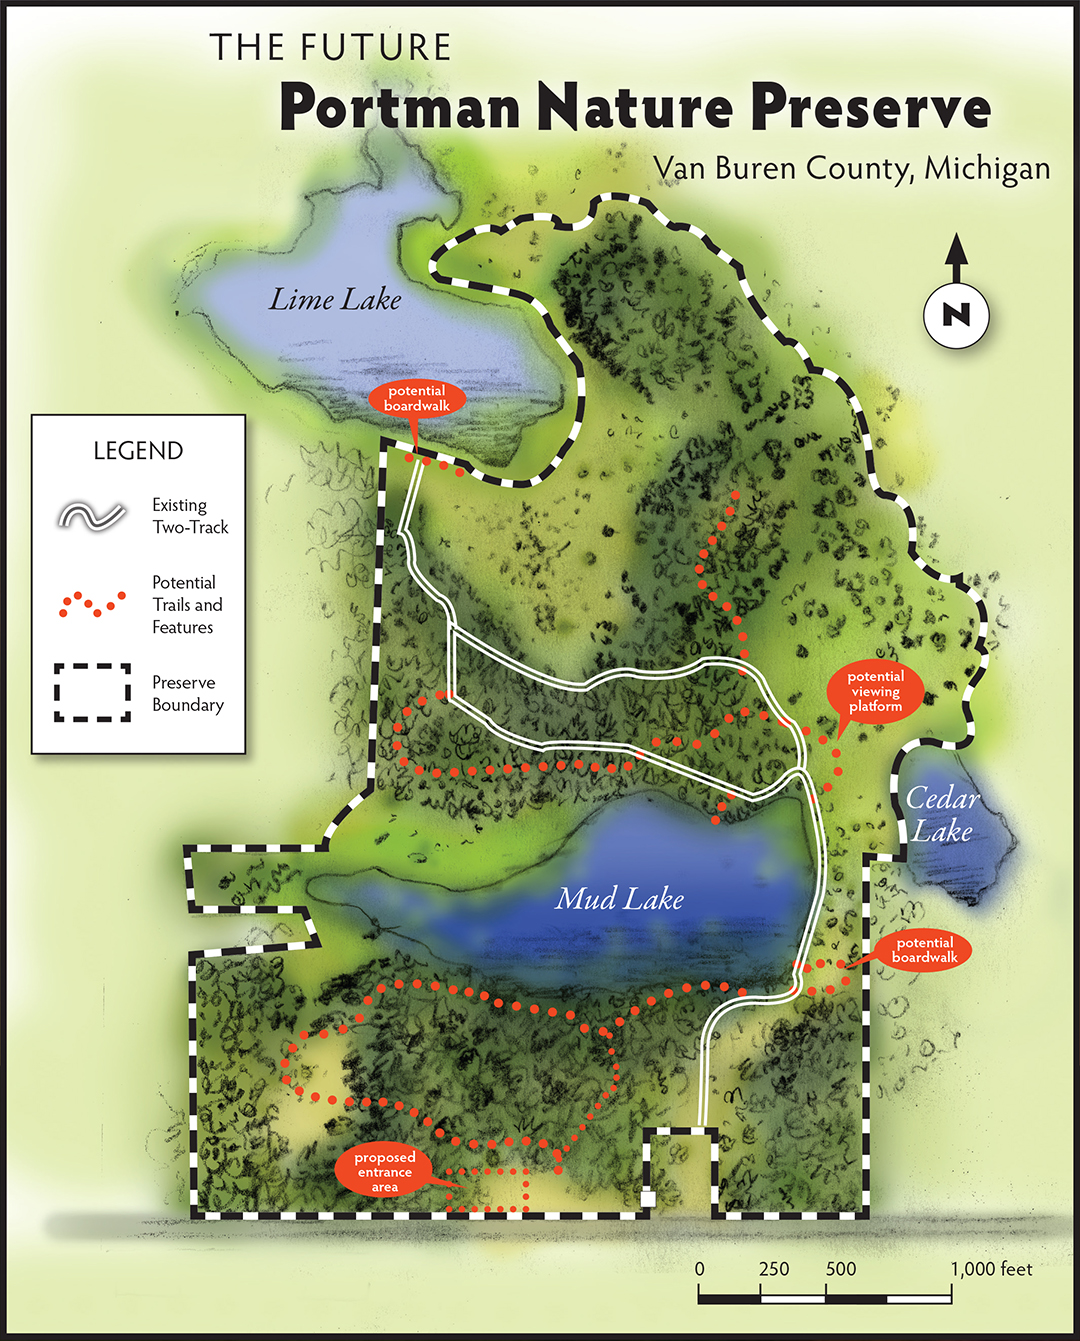 Proposed and existent trails at the future Portman Nature Preserve.